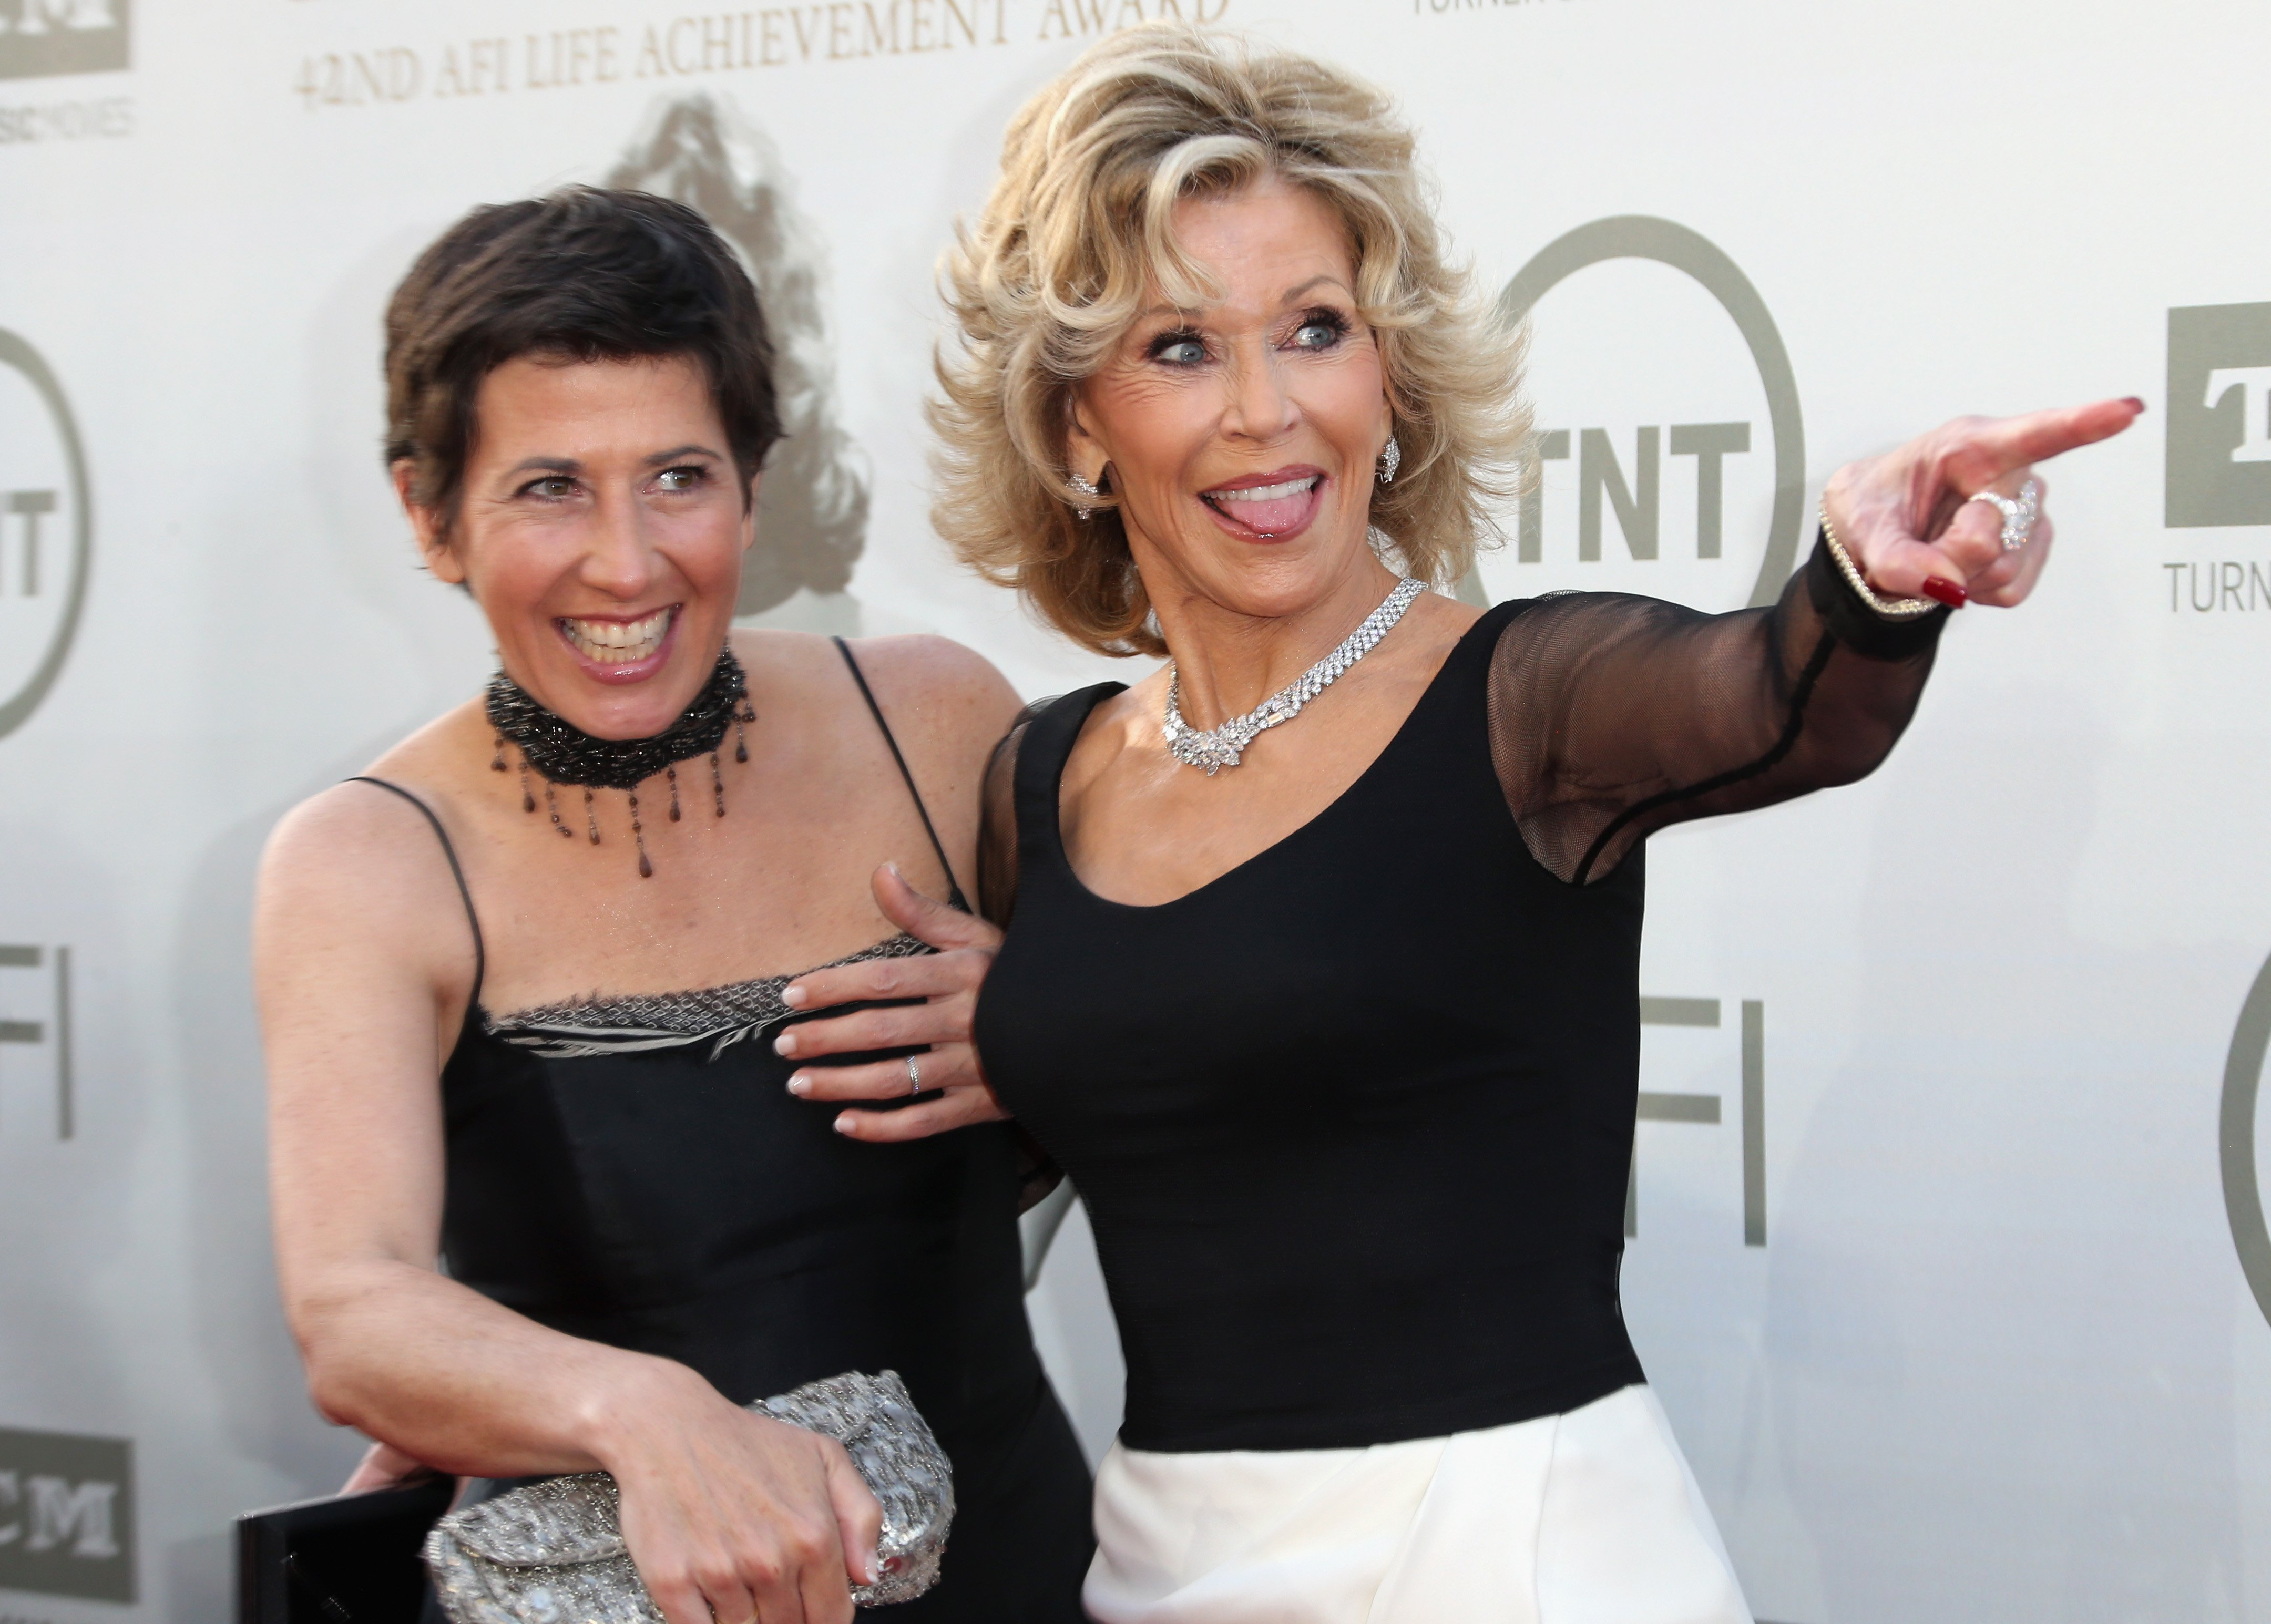 Vanessa Vadim and Honoree Jane Fonda attend the 2014 AFI Life Achievement Award: A Tribute to Jane Fonda at the Dolby Theatre on June 5, 2014 | Photo: GettyImages